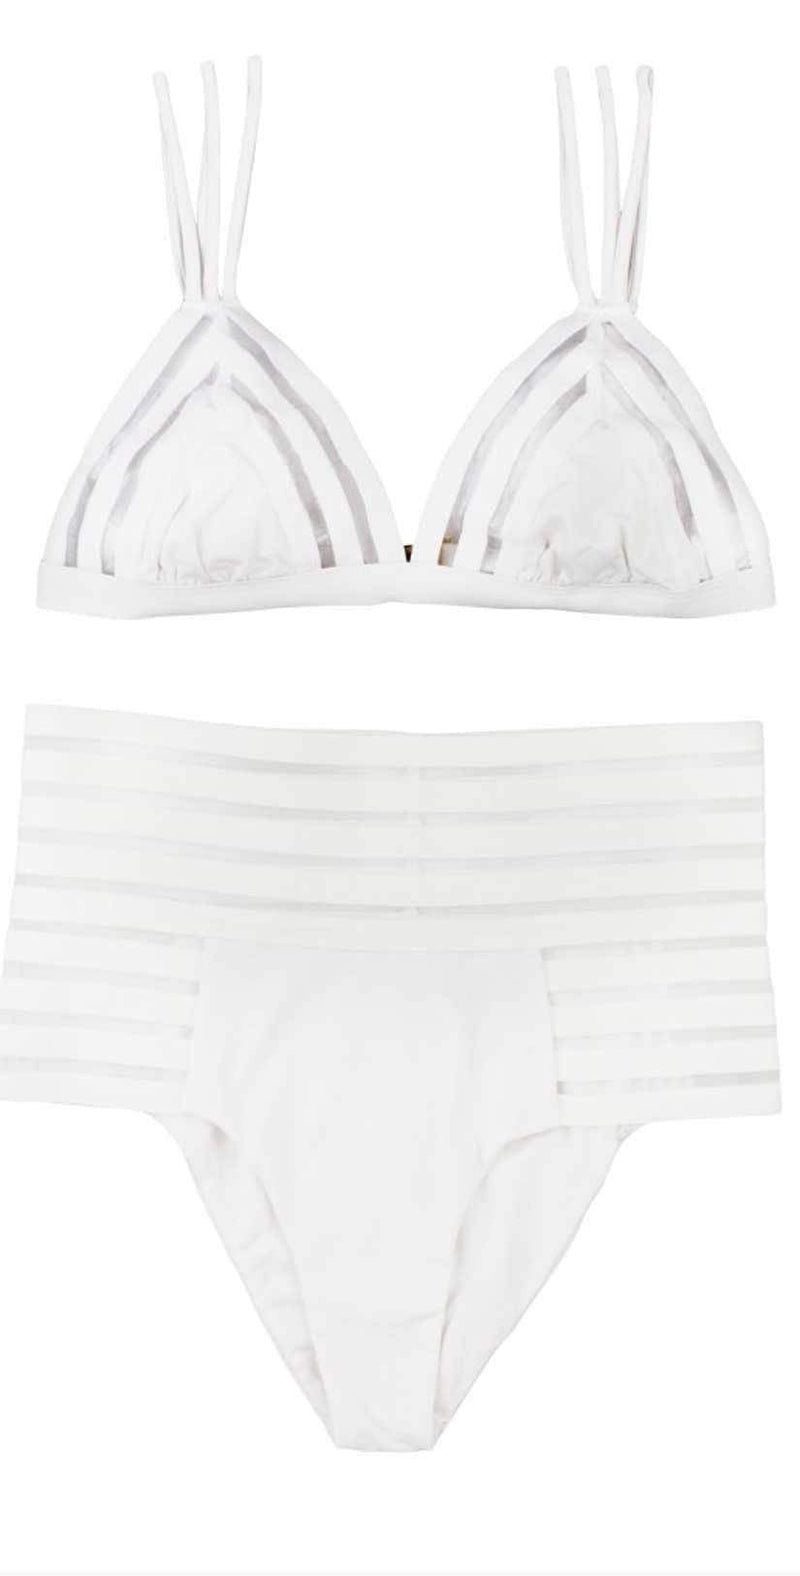 Beach Bunny Sheer Addiction Triangle Top In White B16125T1-WHT: